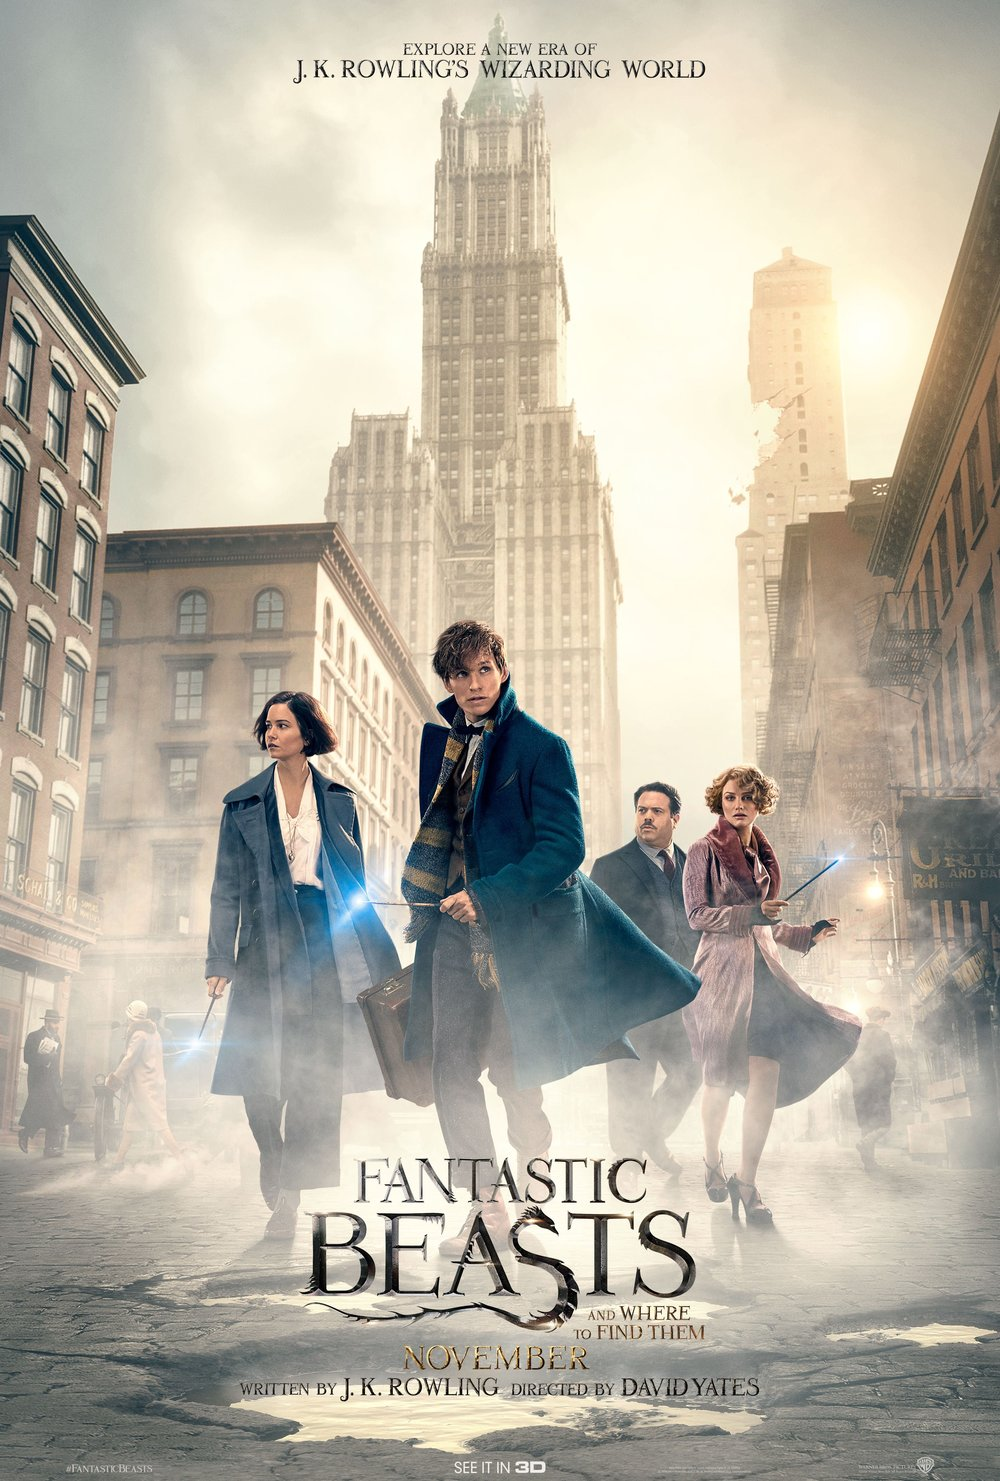 Fantastic-Beasts-and-Where-to-Find-Them-movie-poster.jpg